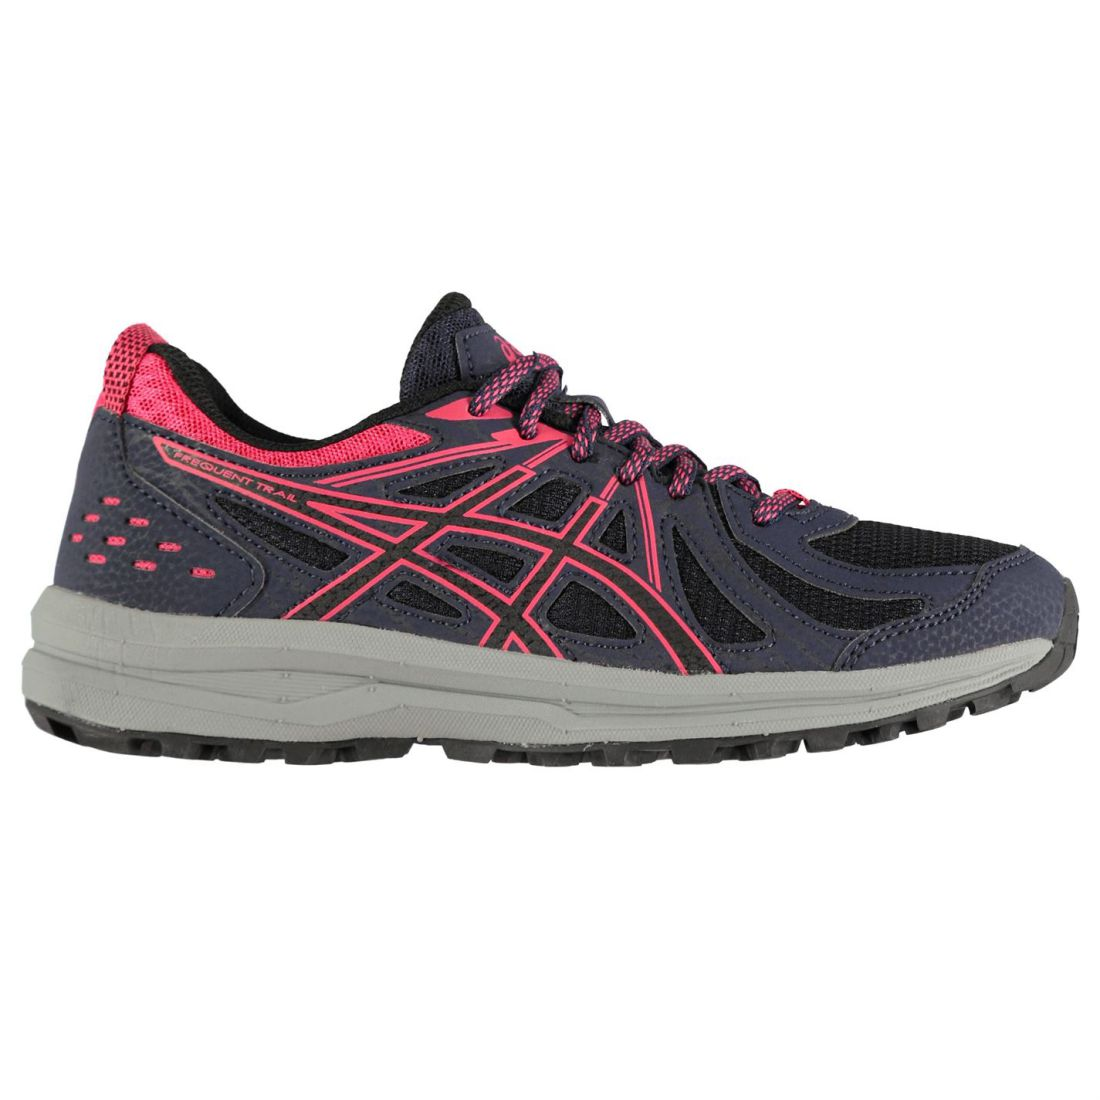 Asics Womens Frequent XT  Trail Running shoes Lace Up Breathable Padded Ankle  best-selling